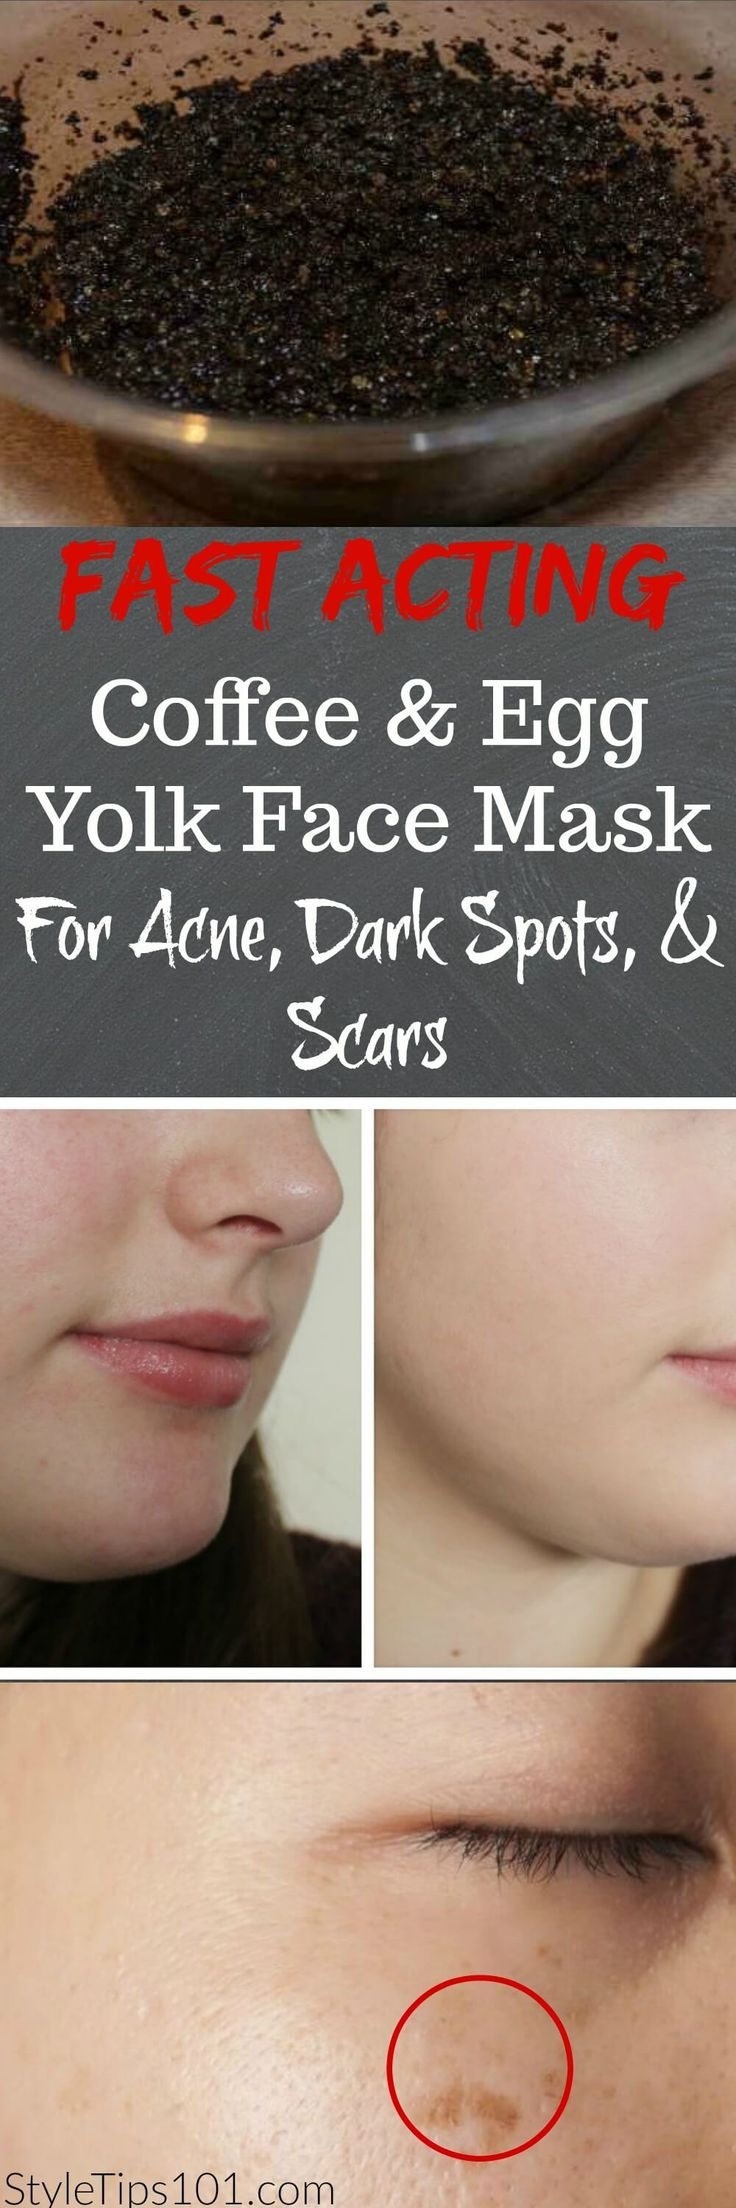 from Roland facial mask recipes for acne